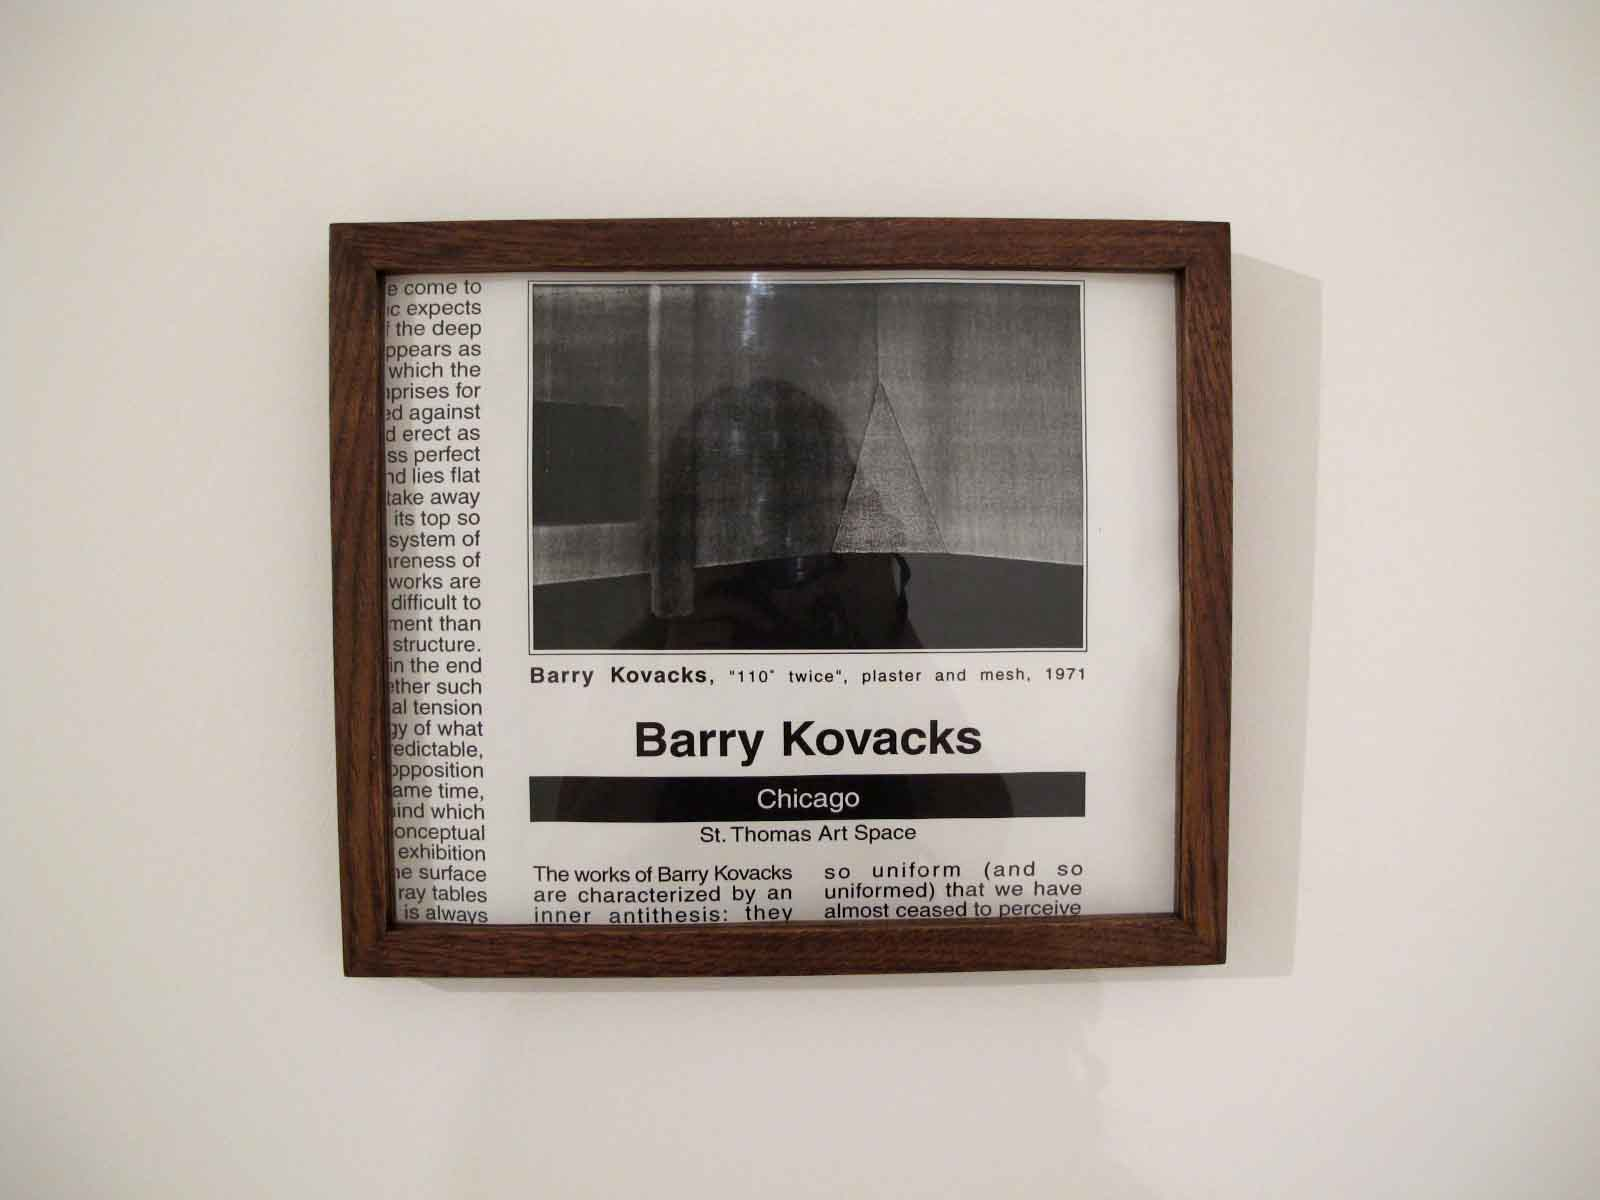 ellen vesters barry kovacks